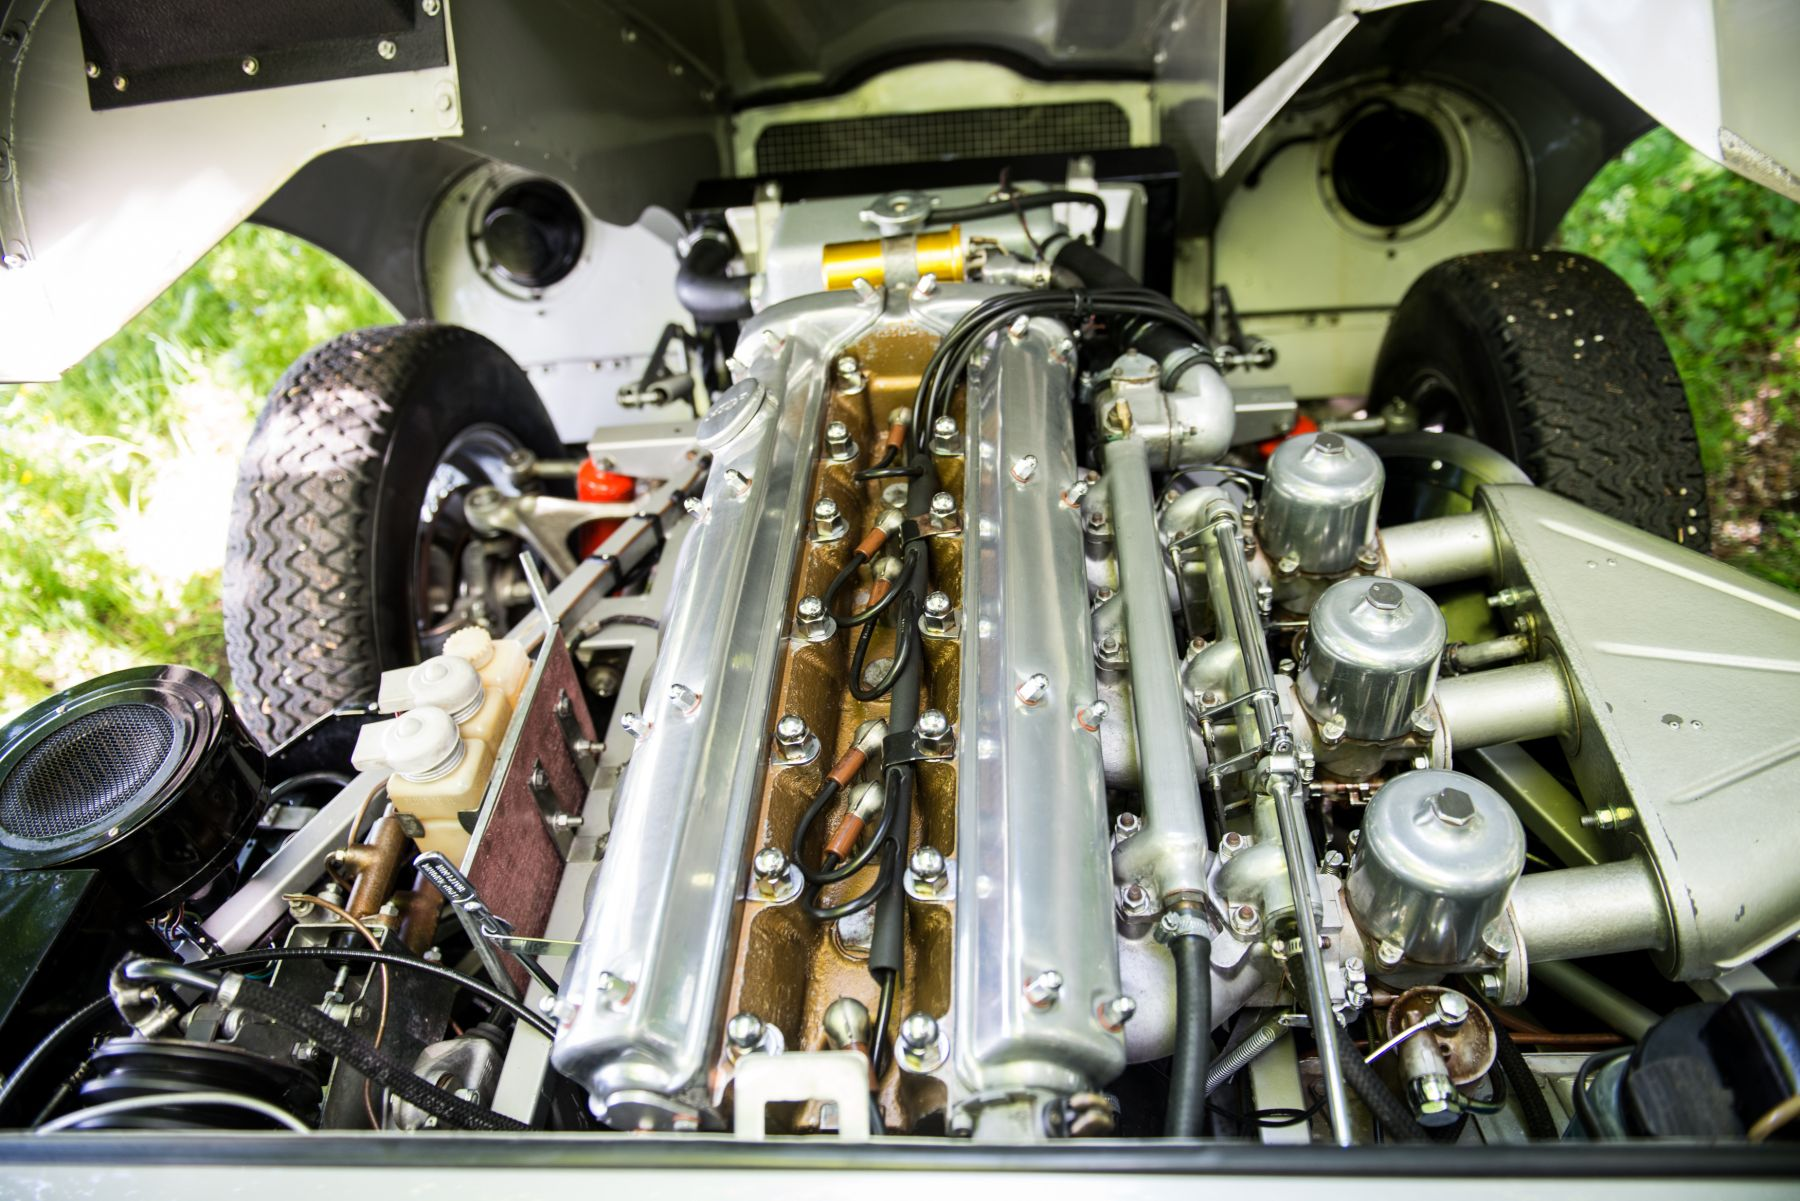 Jaguar E-type 3.8 Open Two Seater 1962 engine